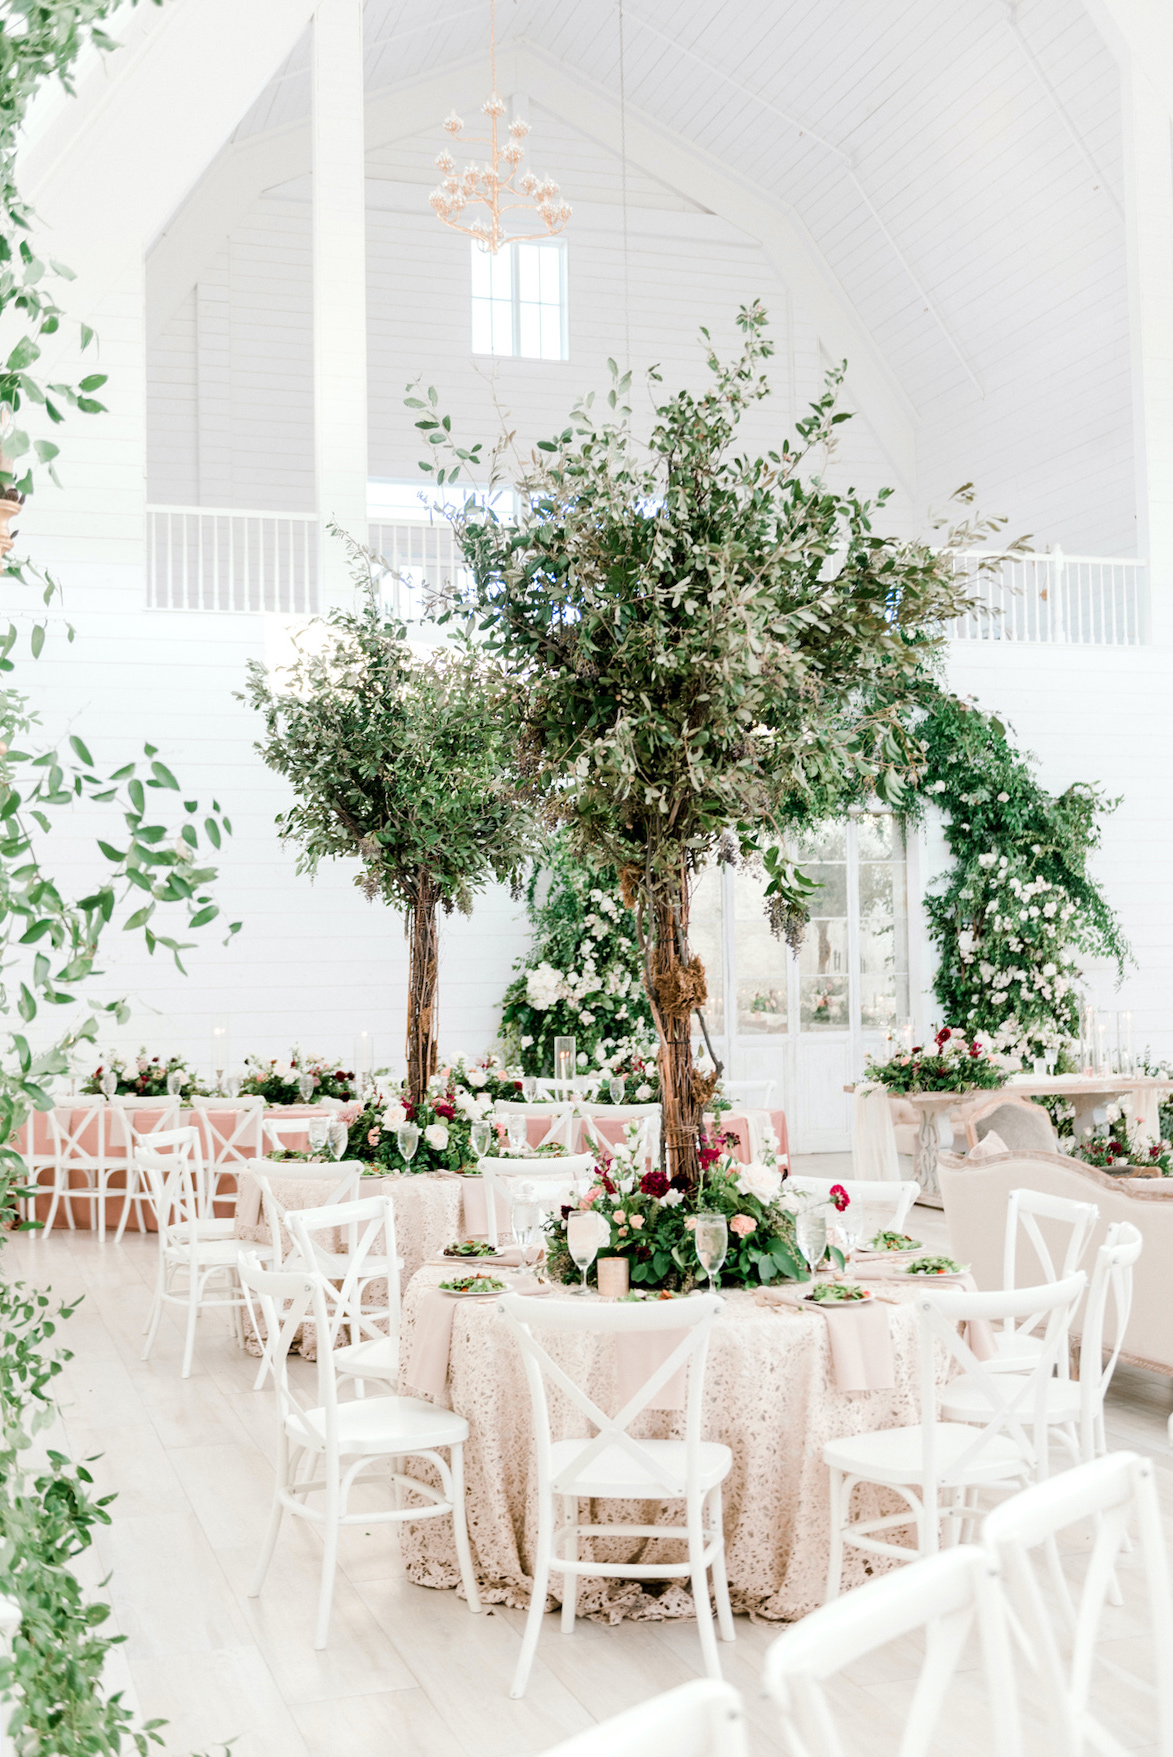 wedding reception space in white, pastel pink and greenery